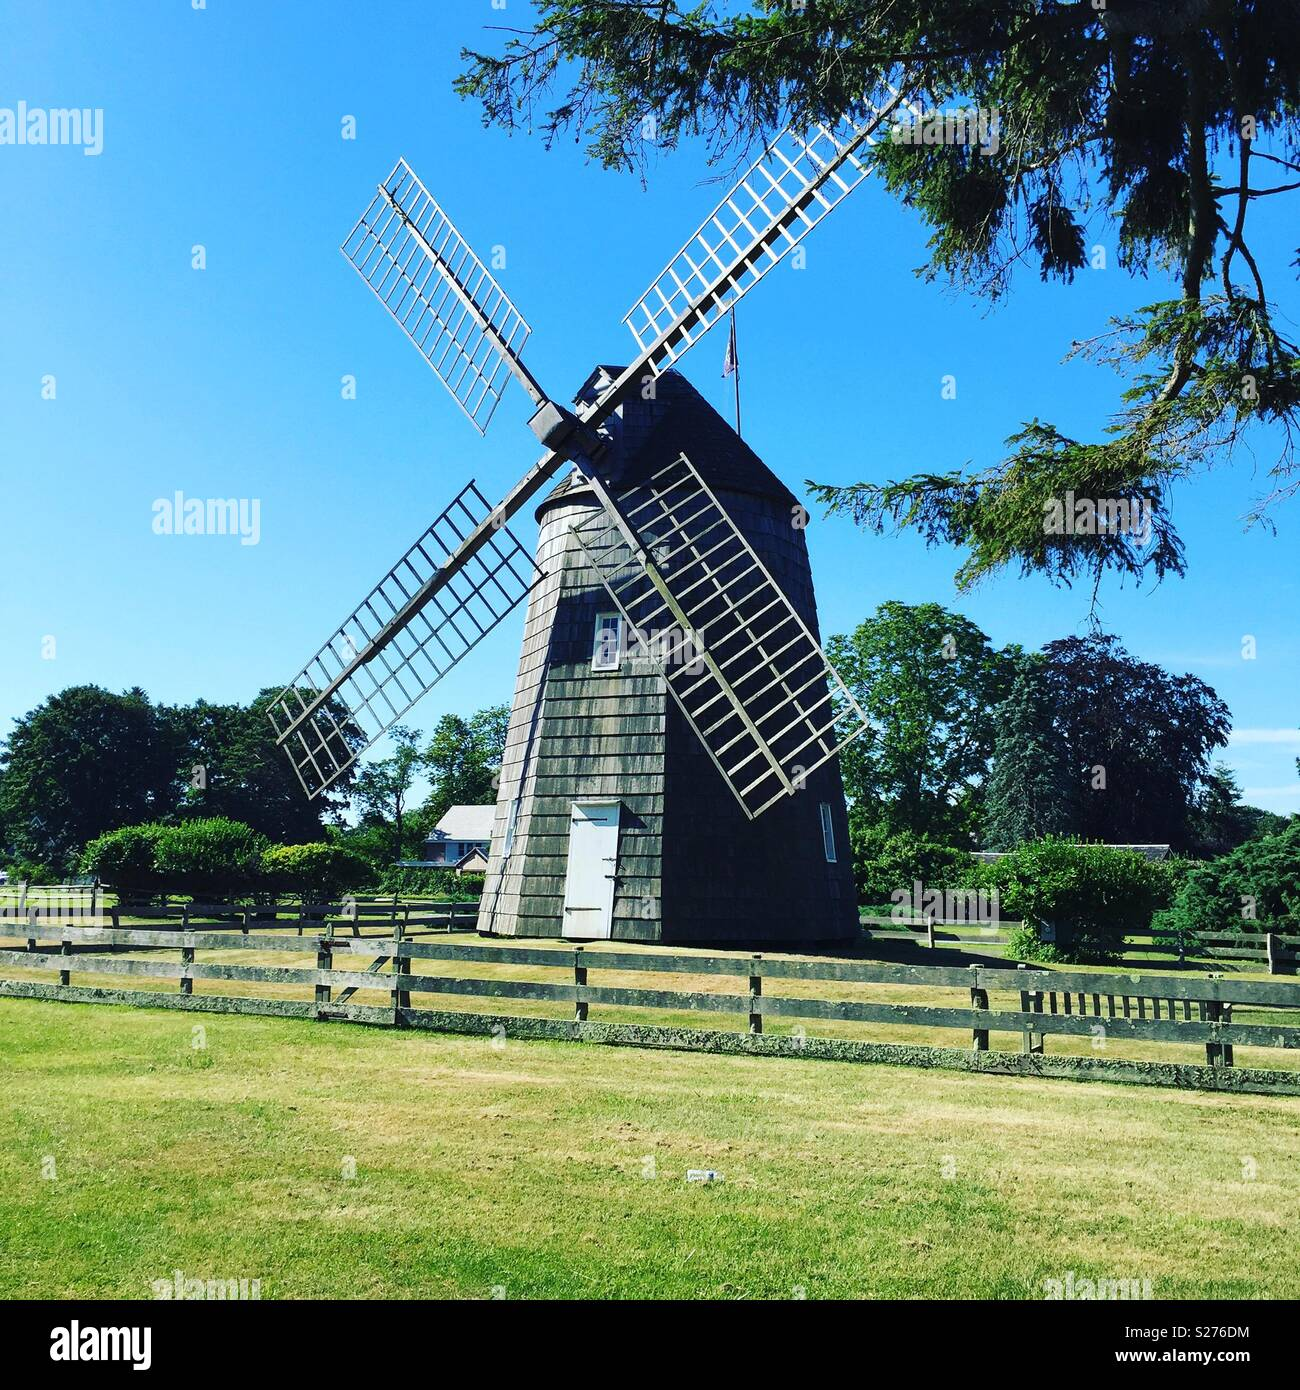 Windmill in the Hamptons - Stock Image